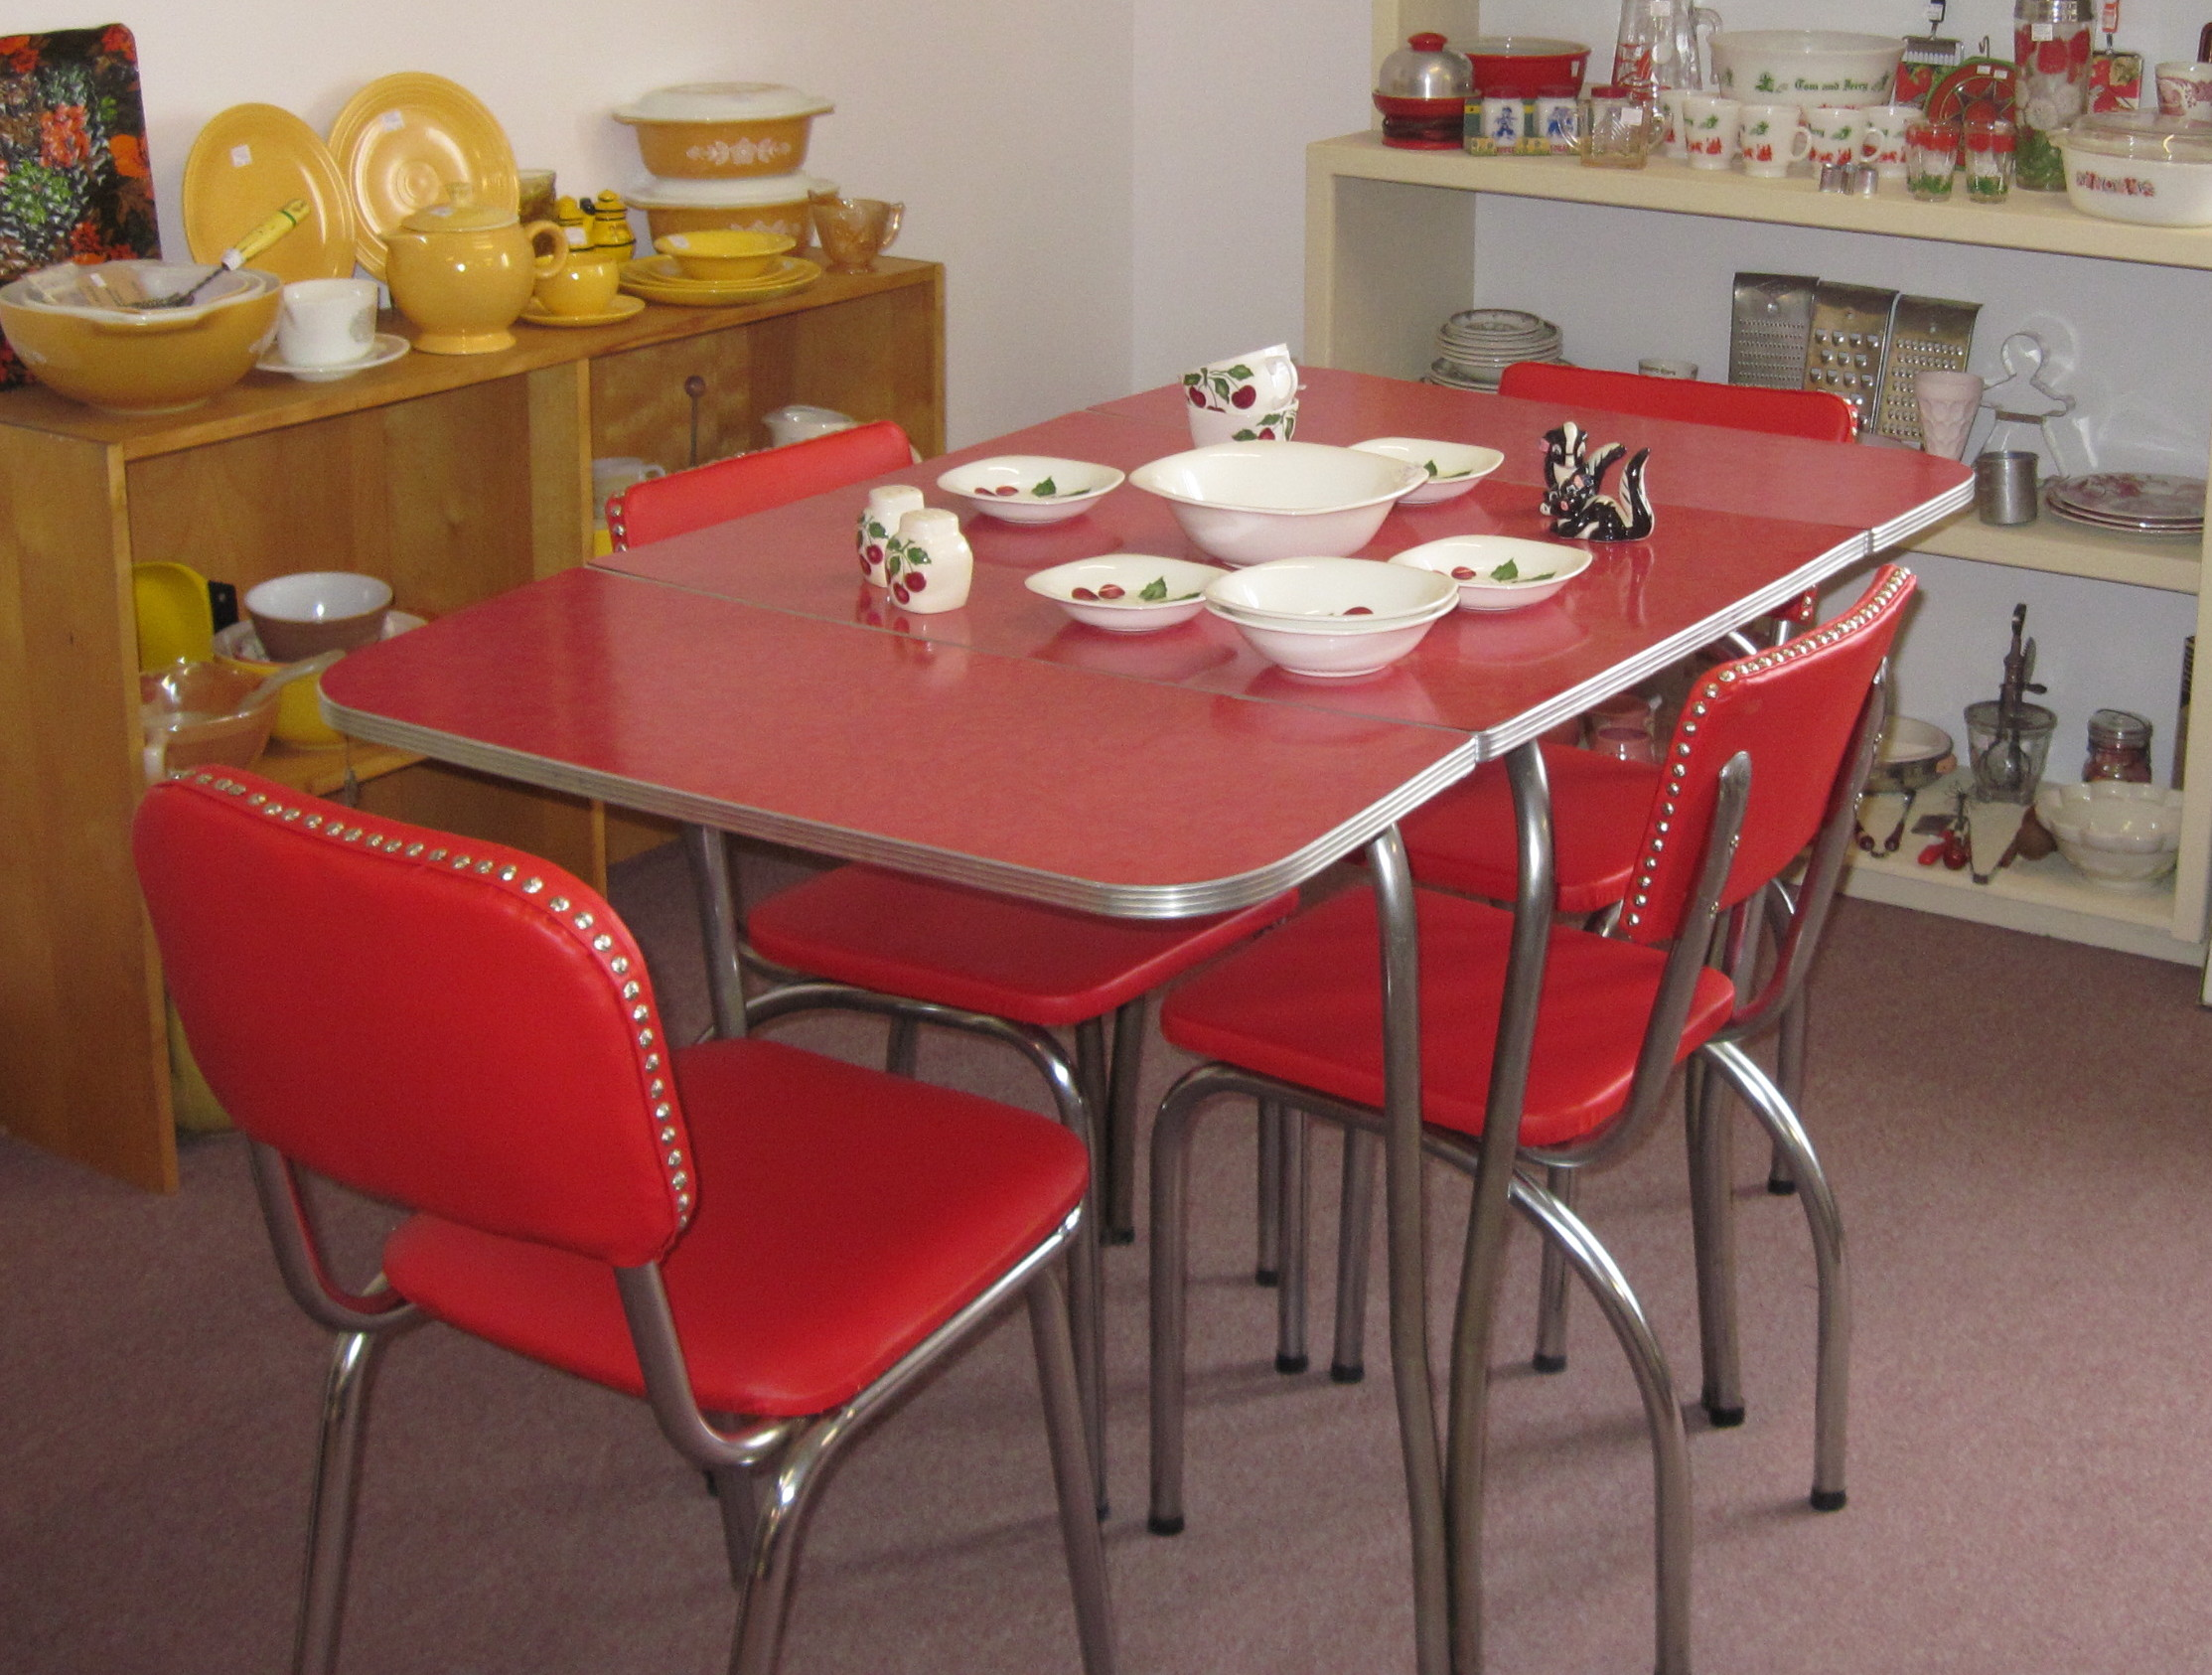 the fifties chairs were reupholstered in red marine vinyl the table